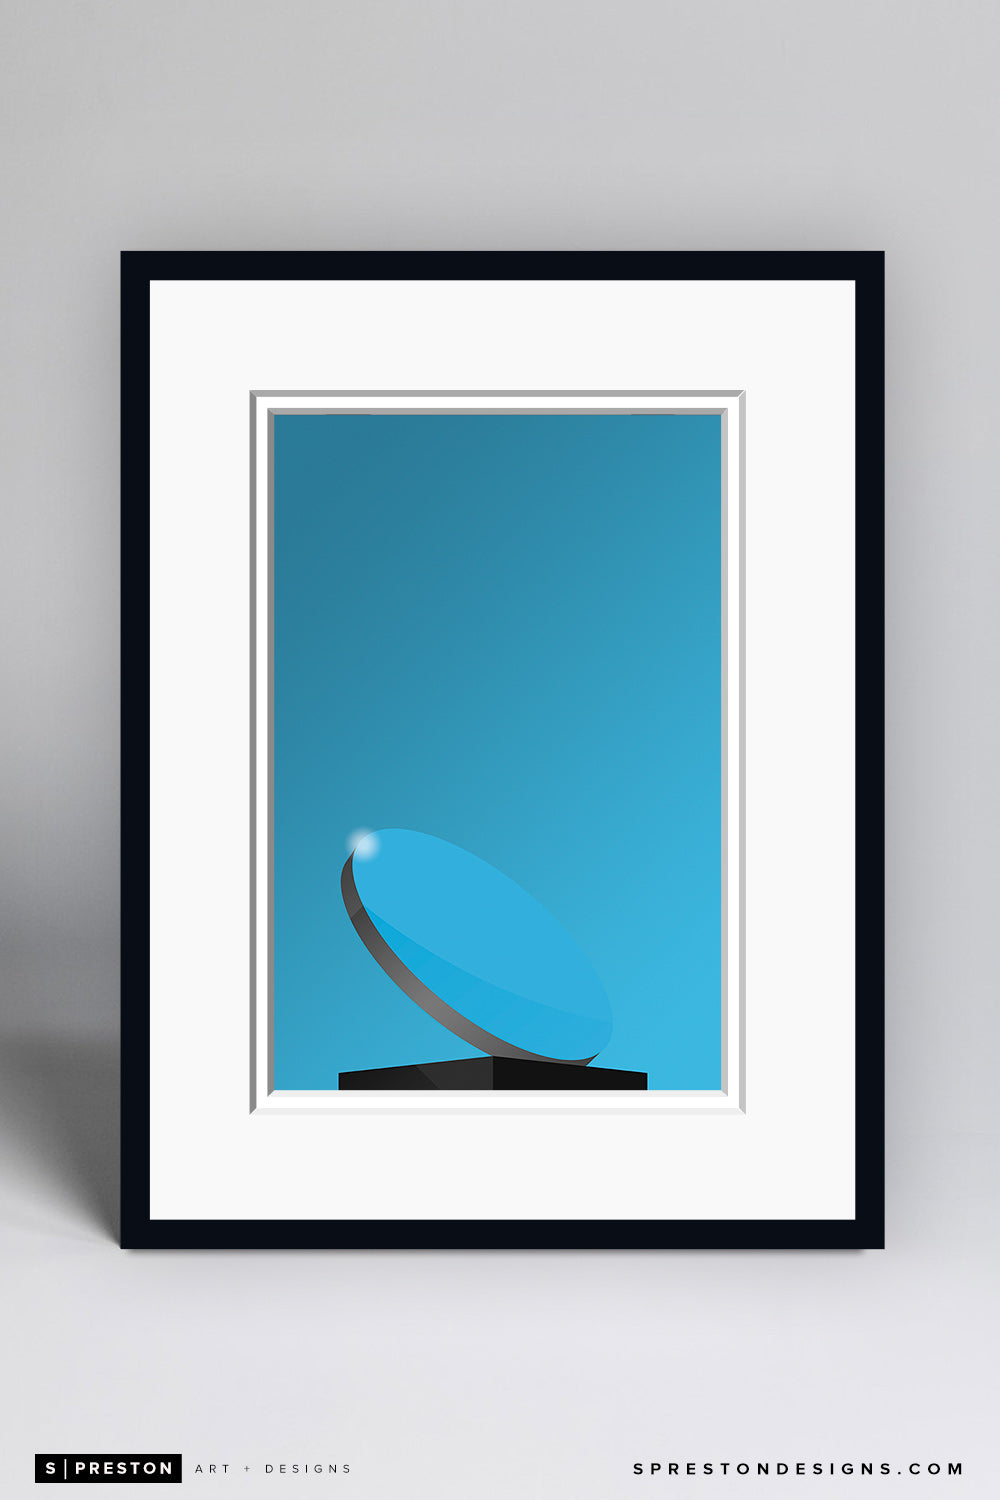 Minimalist AT&T Stadium (sky mirror) Art Print - Dallas Cowboys - S. Preston Art + Designs